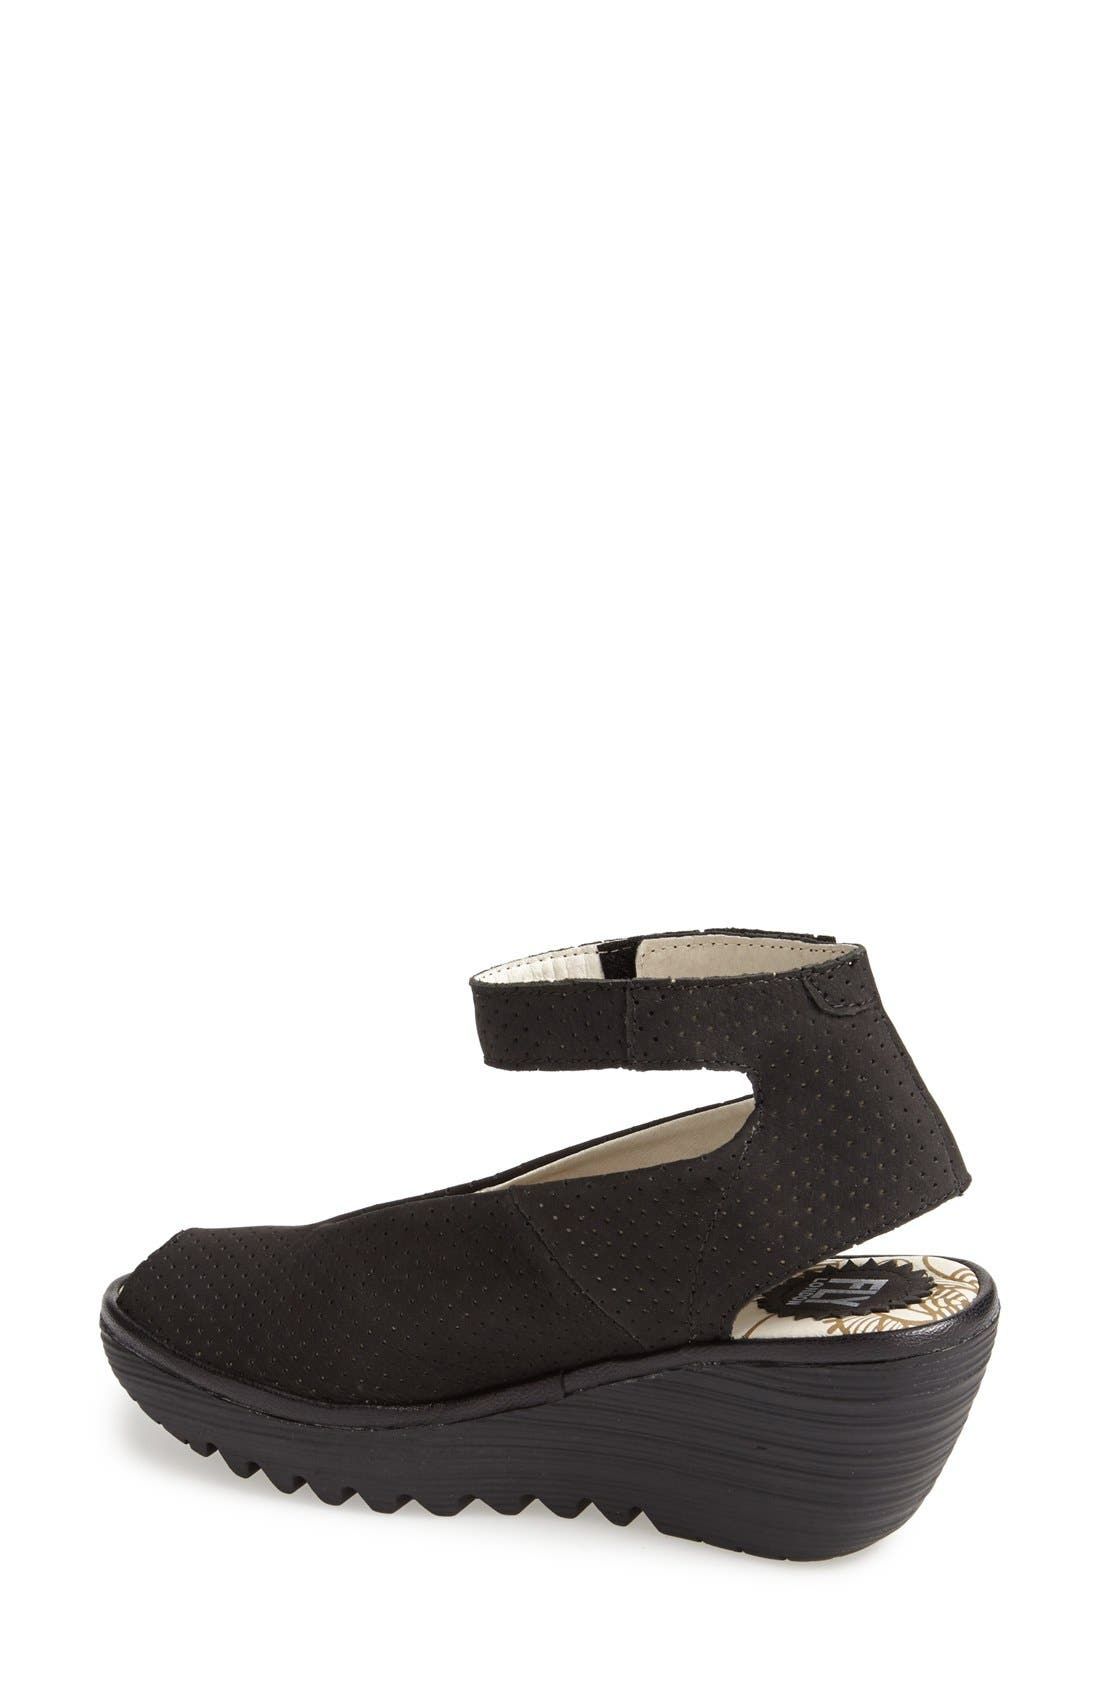 Alternate Image 2  - Fly London 'Yala' Perforated Leather Sandal